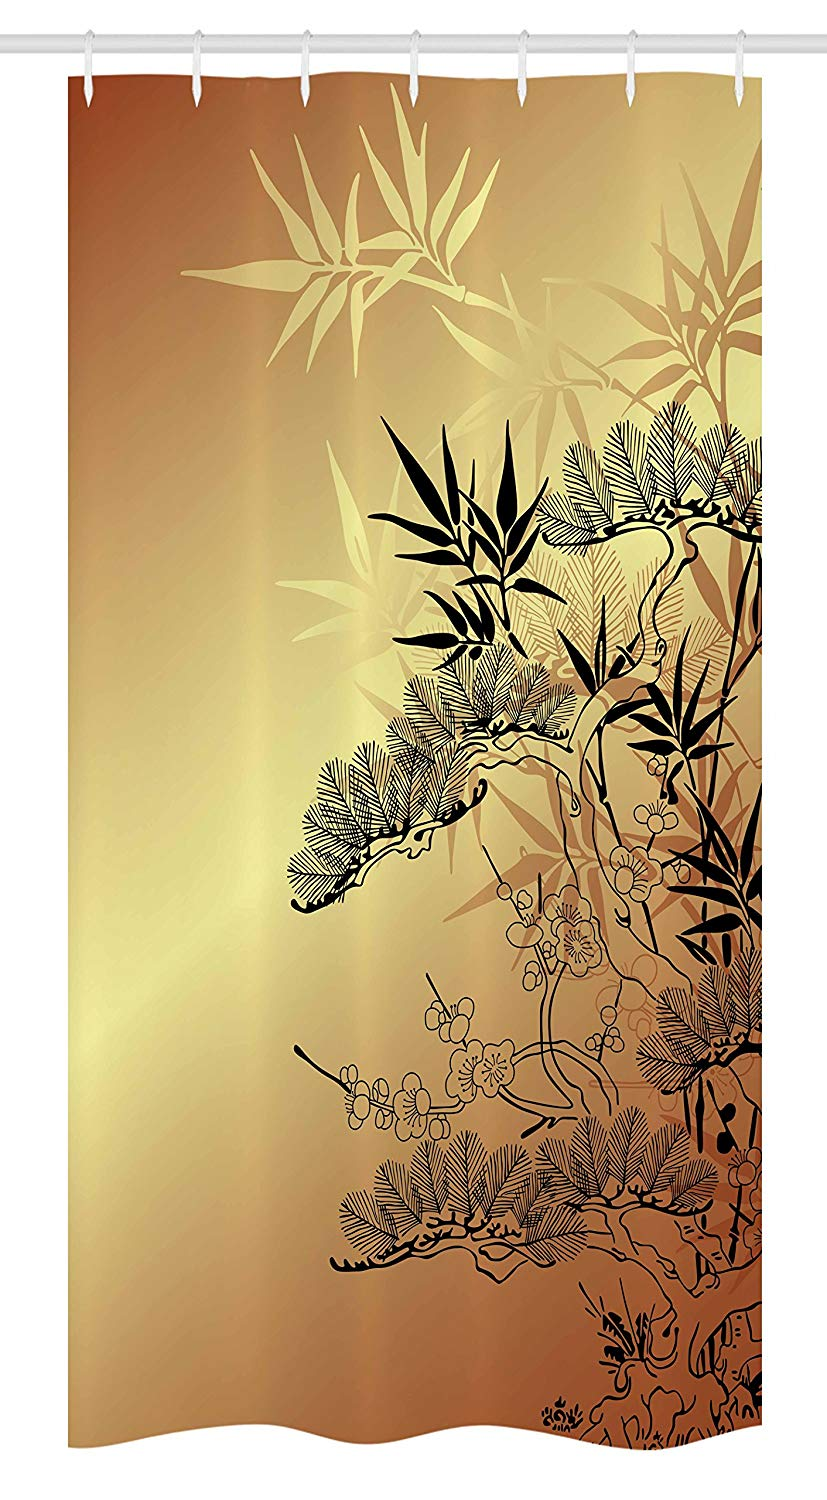 Ambesonne Japanese Stall Shower Curtain, Asian Branches and Bamboo Motifs with Showy Fragrant Leaves Nature Illustration, Fabric Bathroom Decor Set with Hooks, 36 W x 72 L Inches, Sepia Black